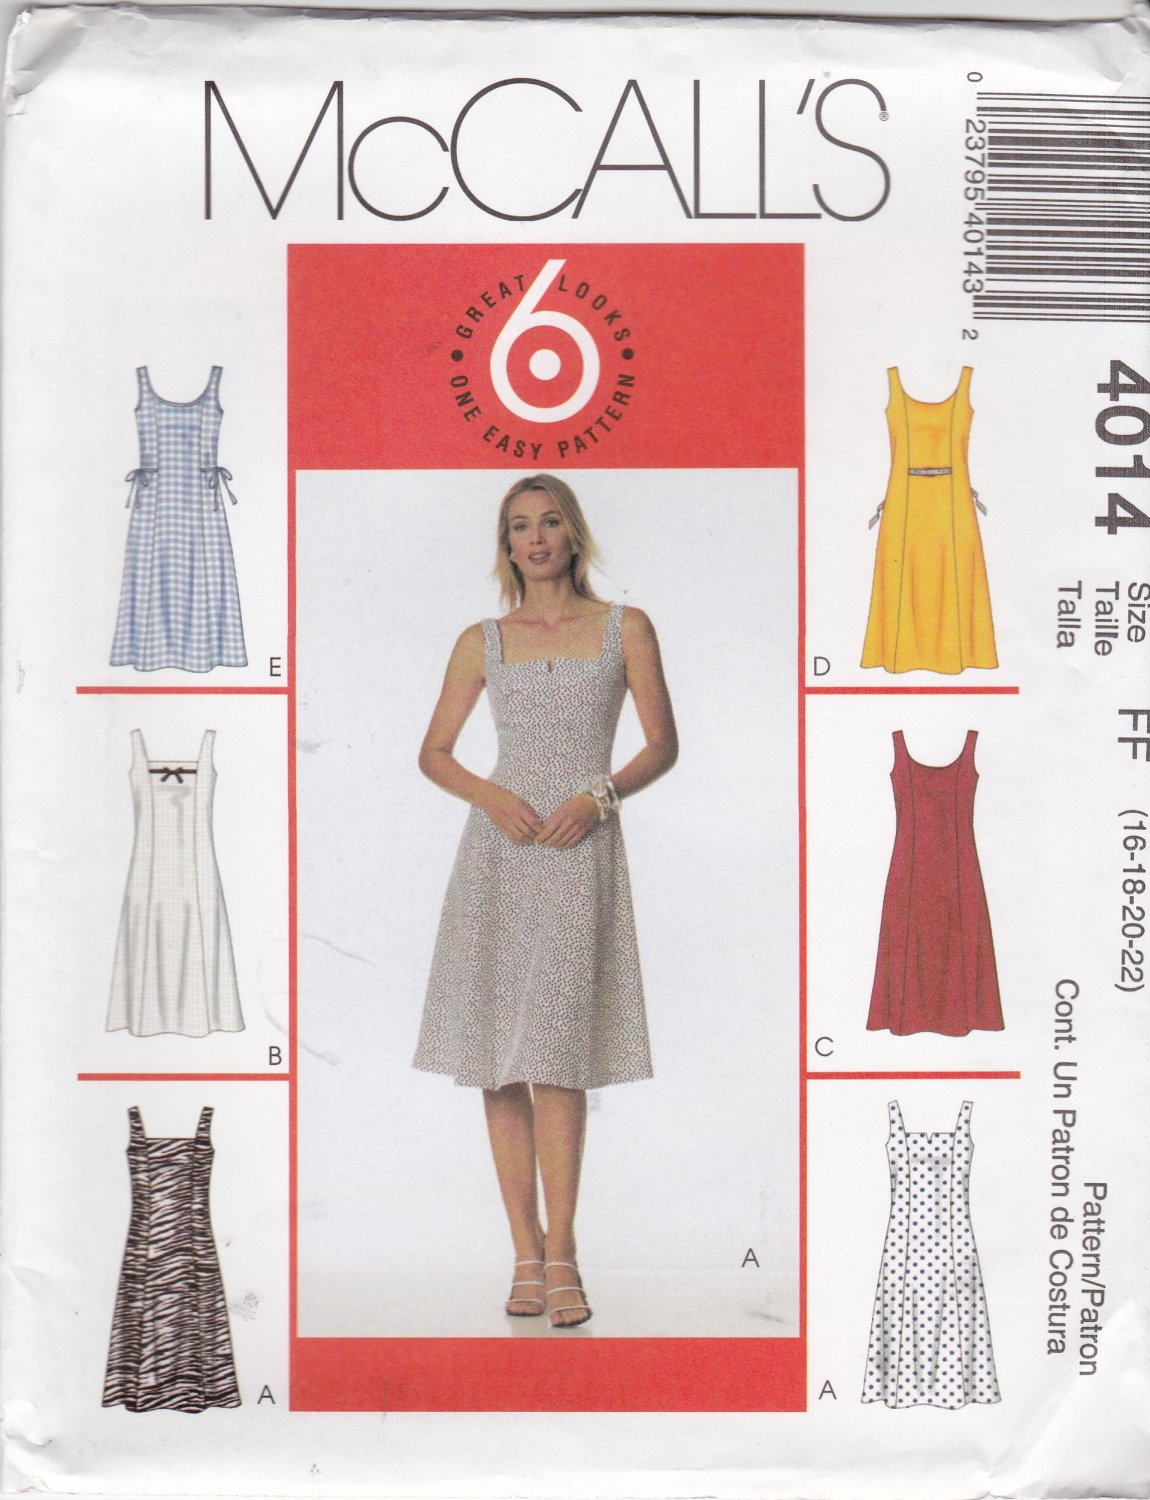 McCall's Sewing Pattern 4014 M4014 Misses Size 16-22 Easy Sleeveless Summer Flared Skirt Dress